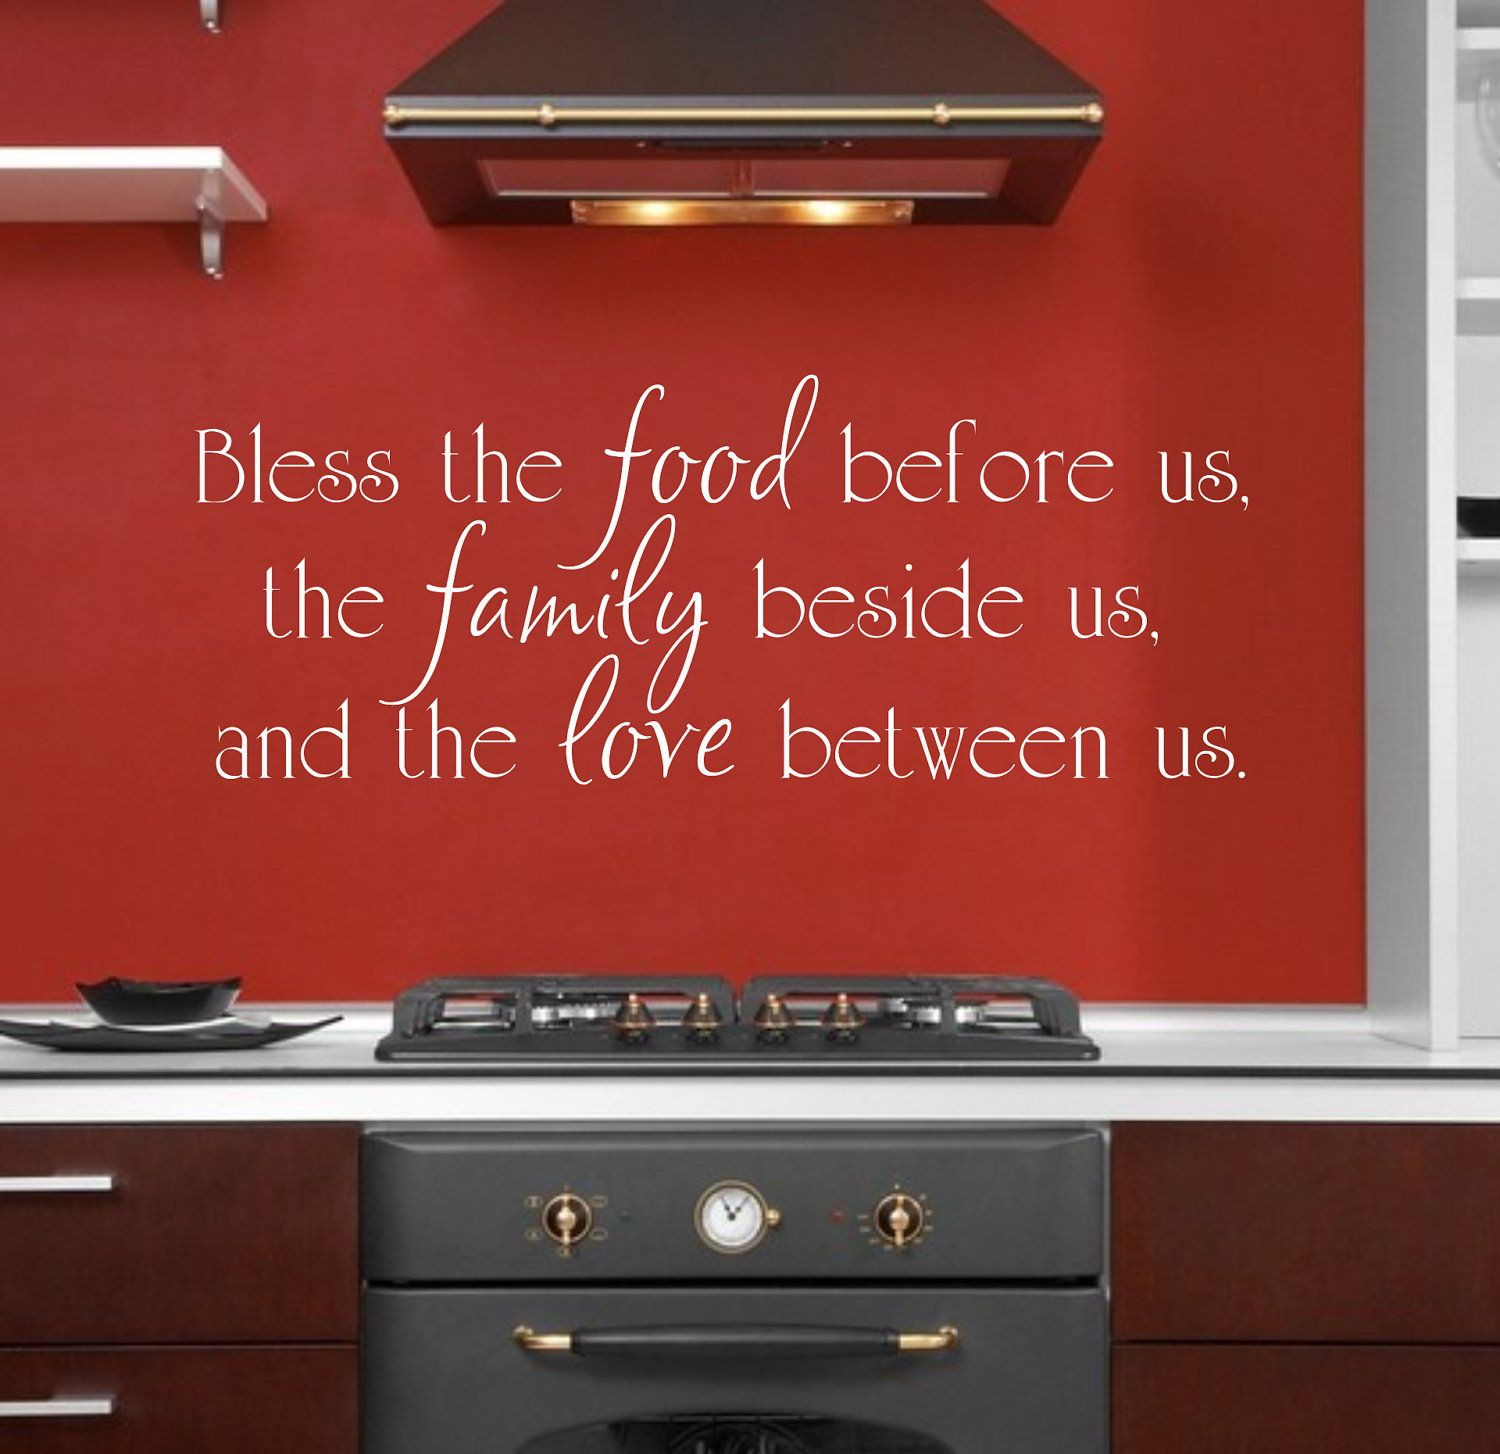 Bless the food before us the family beside us and the love between